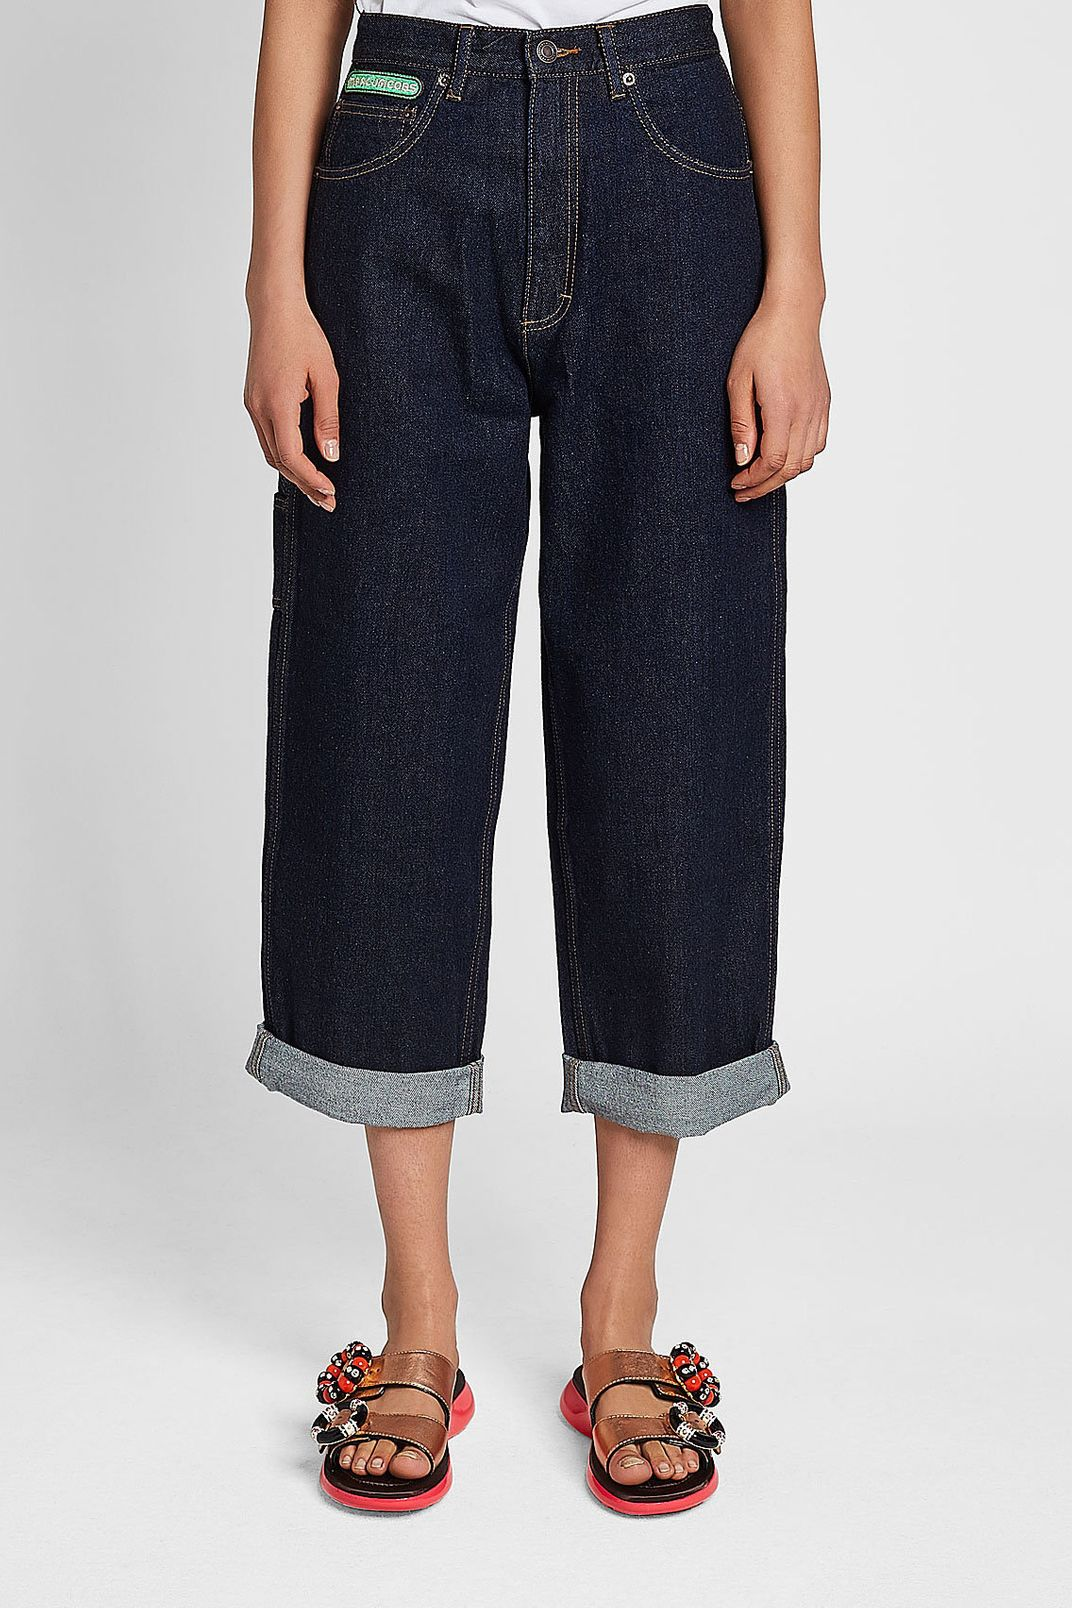 Marc Jacobs Wide Leg Cuffed Jeans